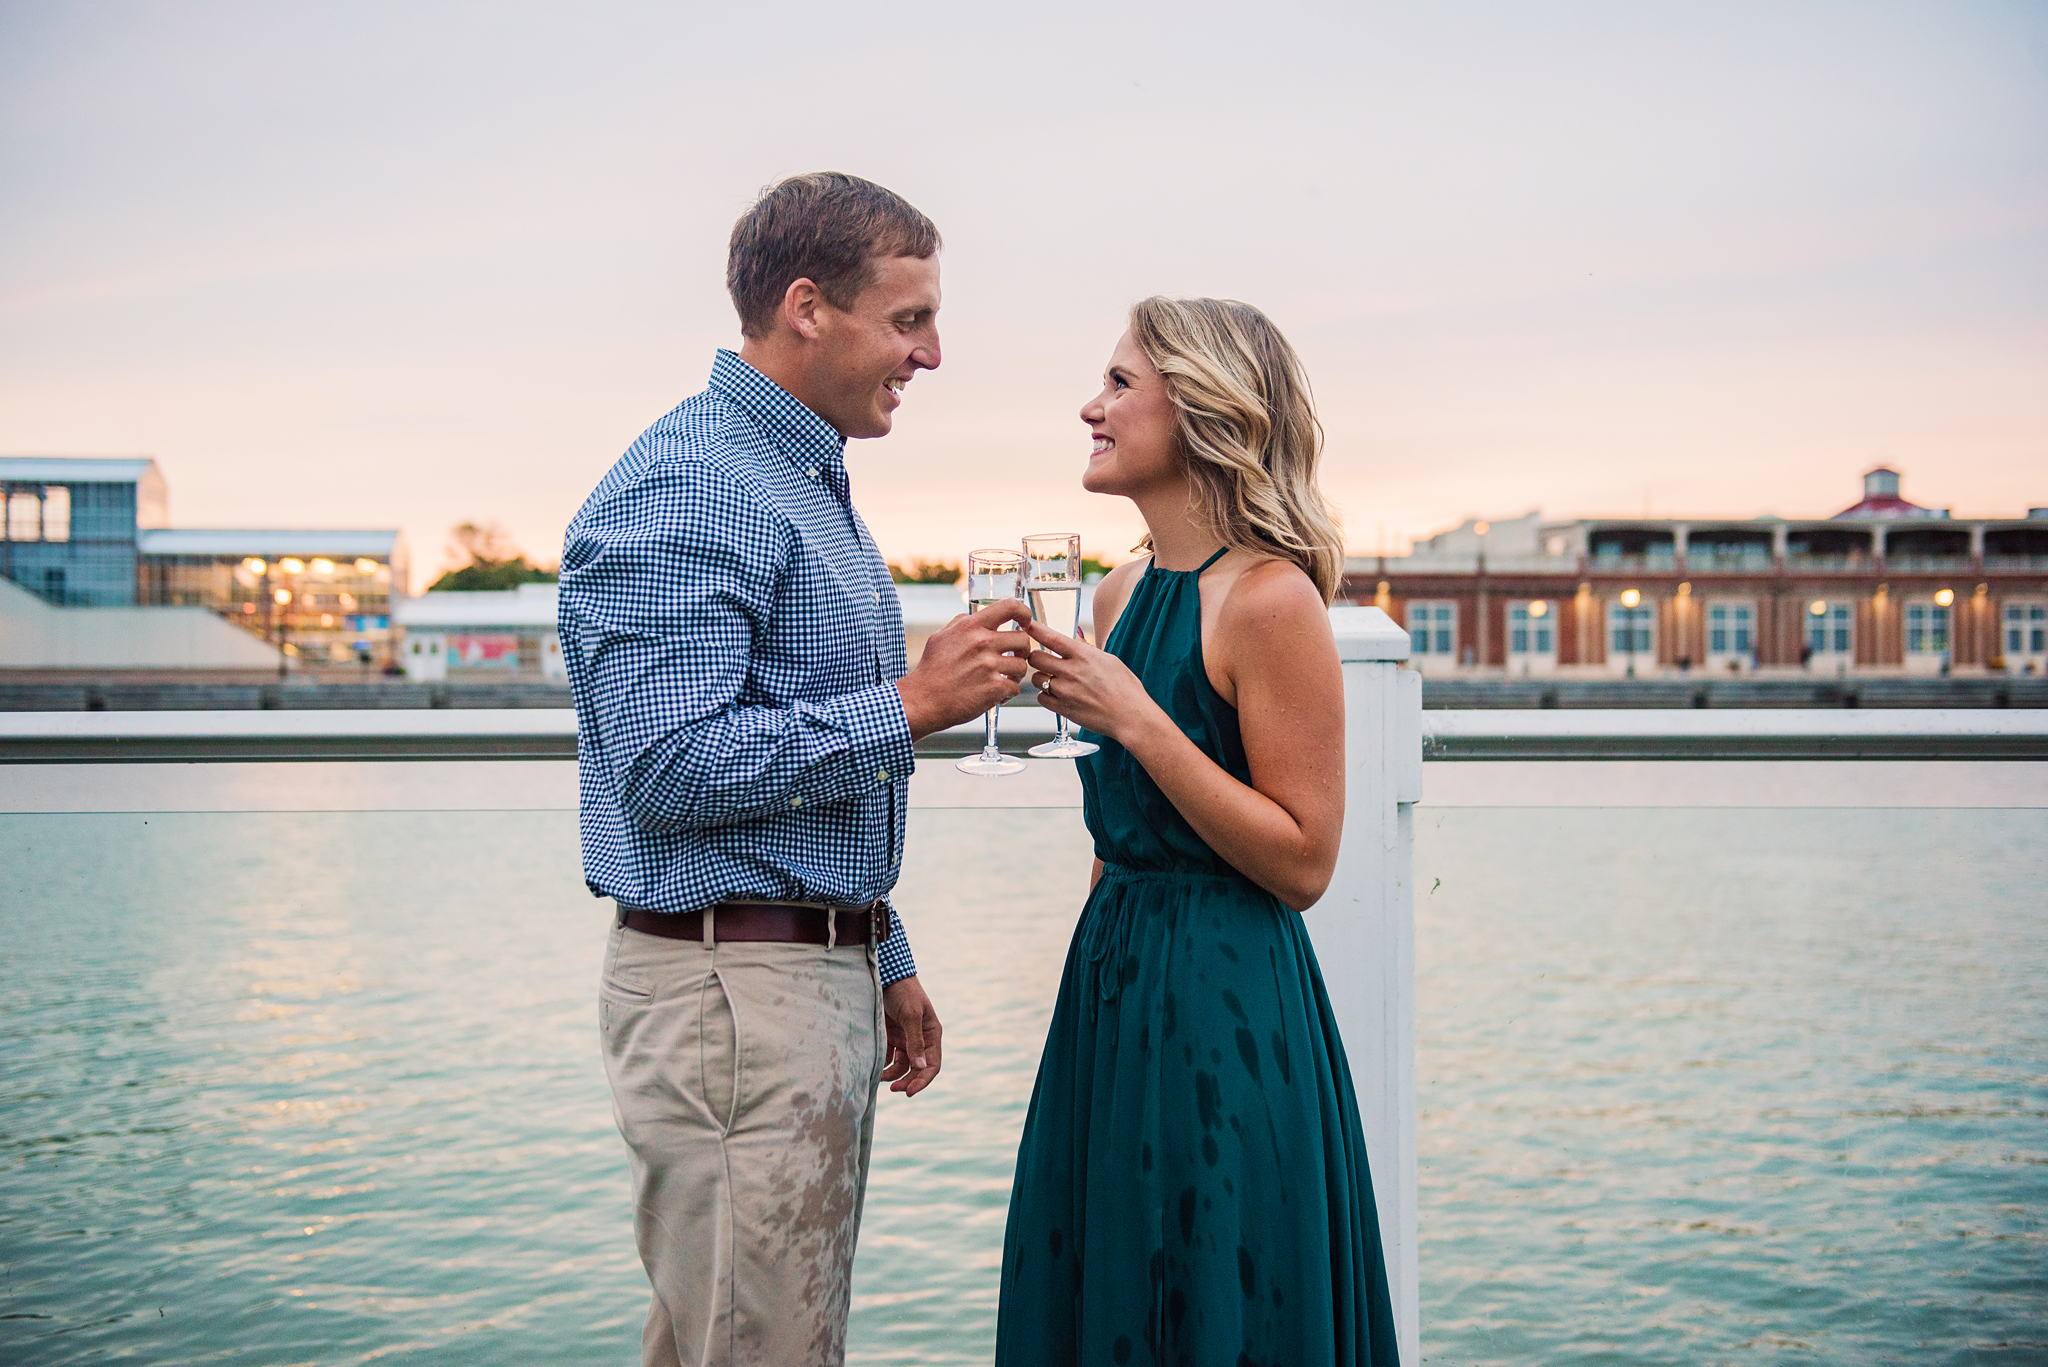 George_Eastman_House_Rochester_Yacht_Club_Rochester_Engagement_Session_JILL_STUDIO_Rochester_NY_Photographer_DSC_8299.jpg